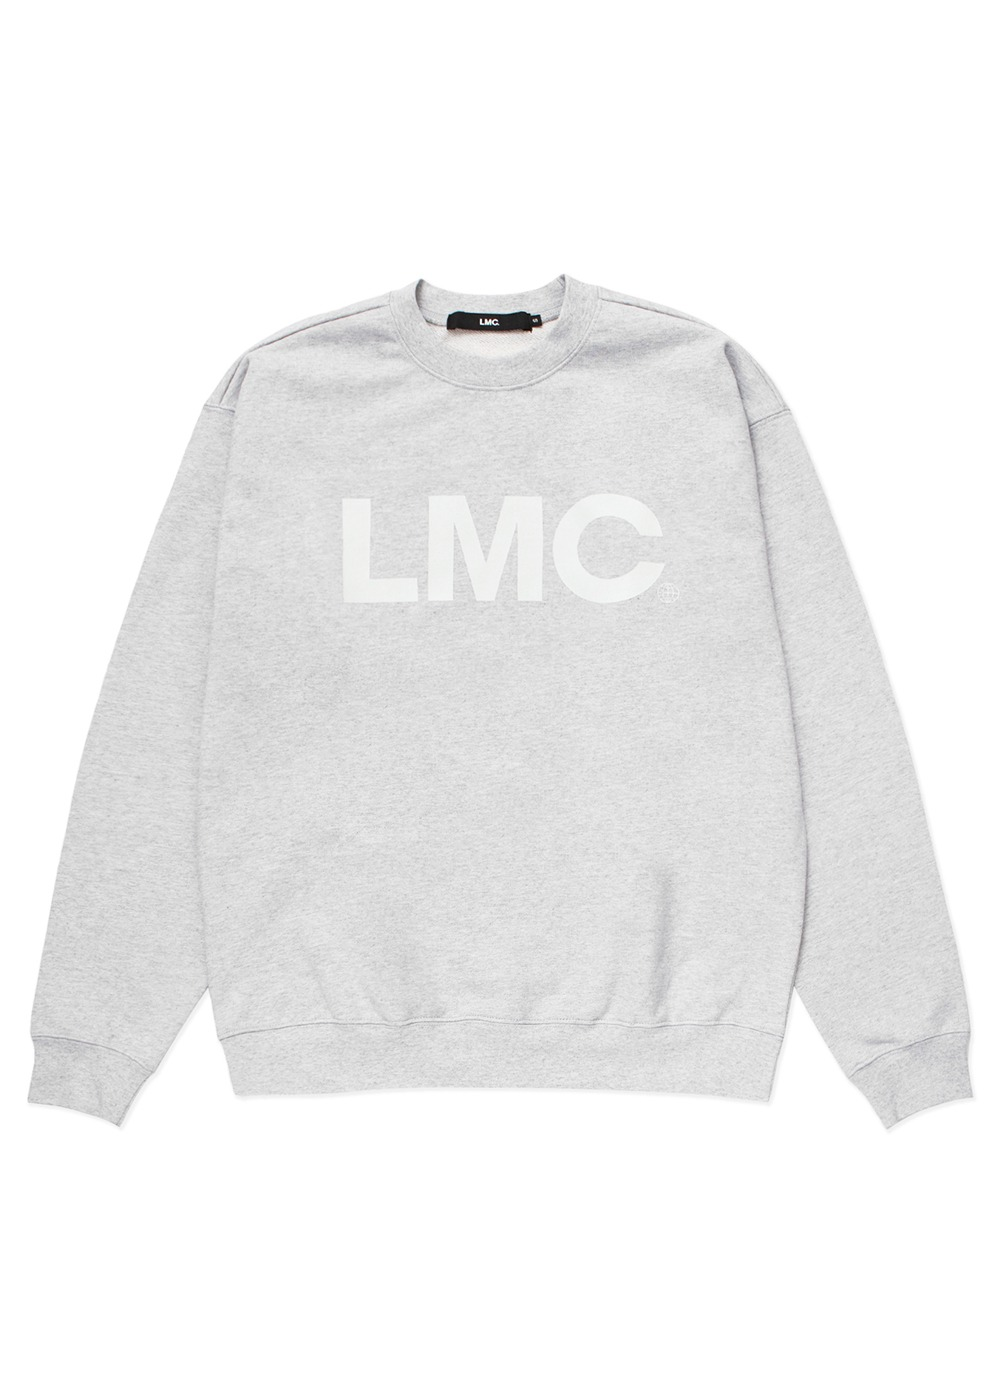 LMC OG WHEEL SWEATSHIRT heather gray